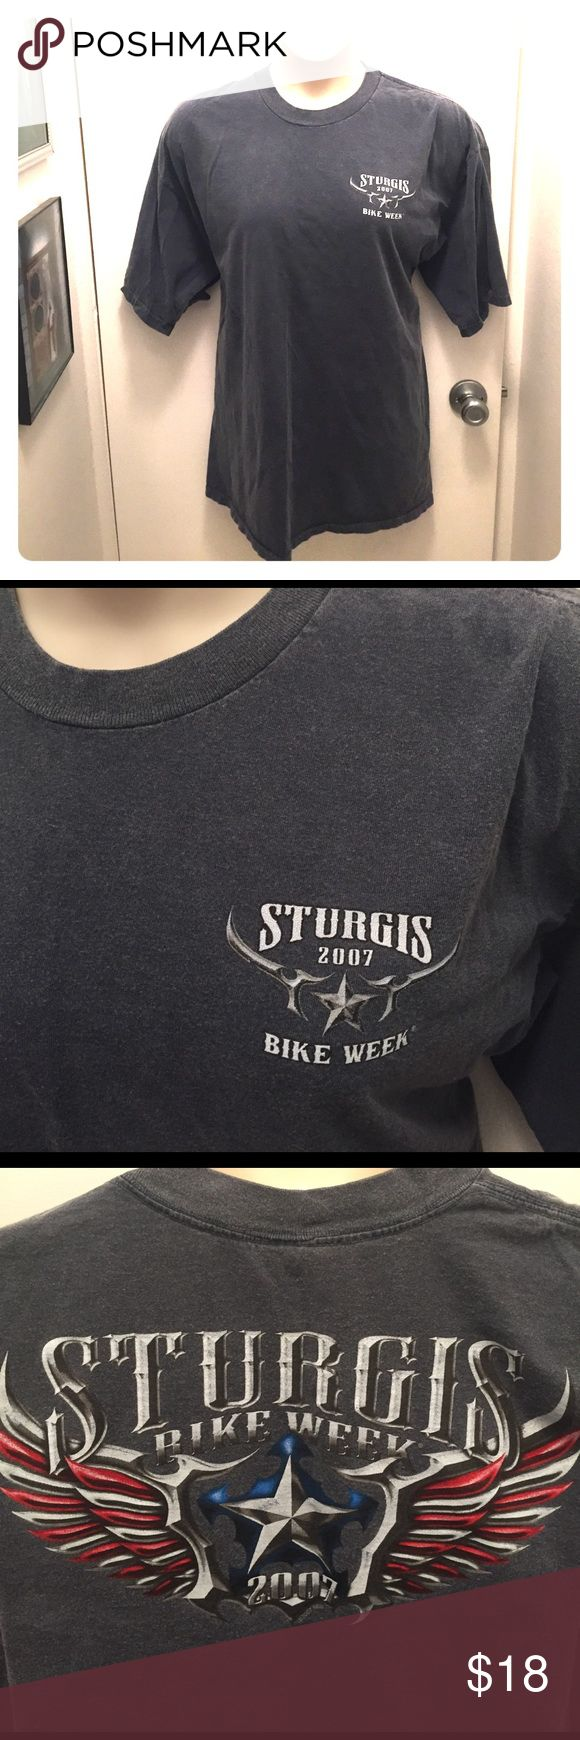 """Vintage Sturgis Tee Excellent condition, no flaws. Dark gray, made to look faded. Genuine tee from Sturgis bike week 2007.  Front and back graphic. 54"""" chest. (Apologies for the female mannequin; can be a unisex tee.) Delta Shirts Tees - Short Sleeve"""